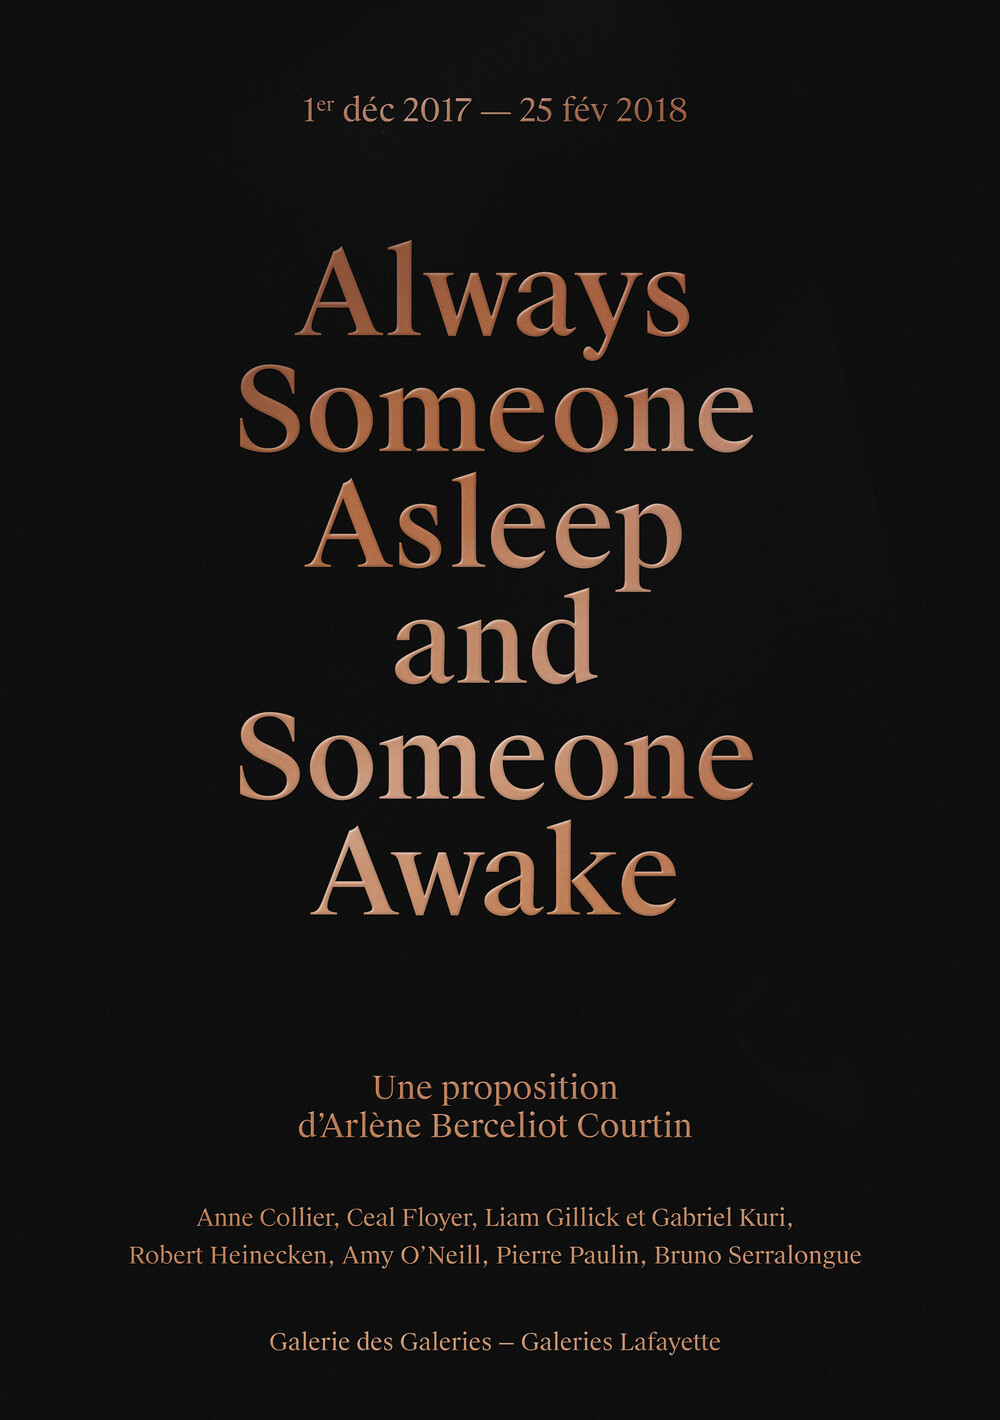 Always Someone Asleep and Someone Awake - © Galerie des Galeries